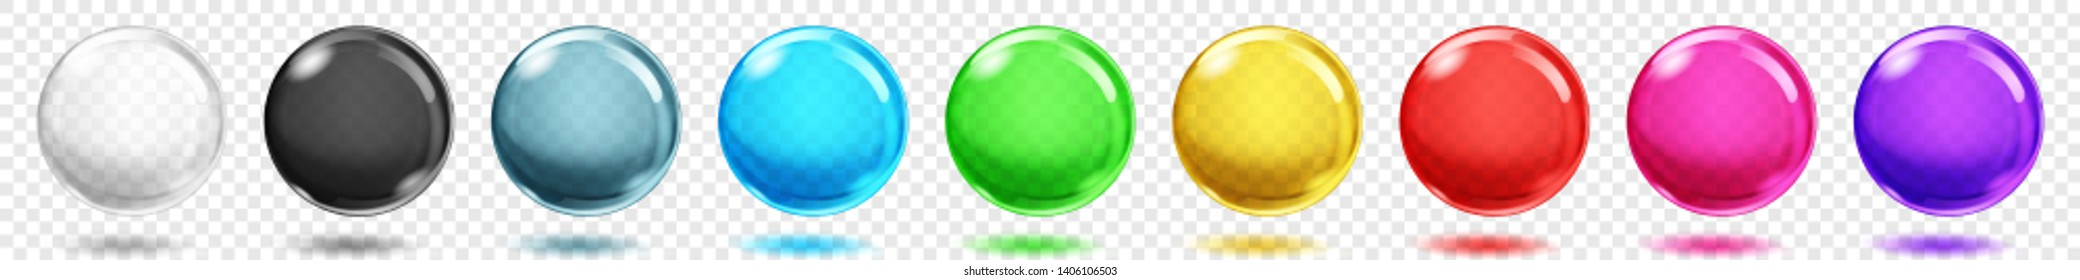 Set of translucent colored spheres with shadows on transparent background. Transparency only in vector format.